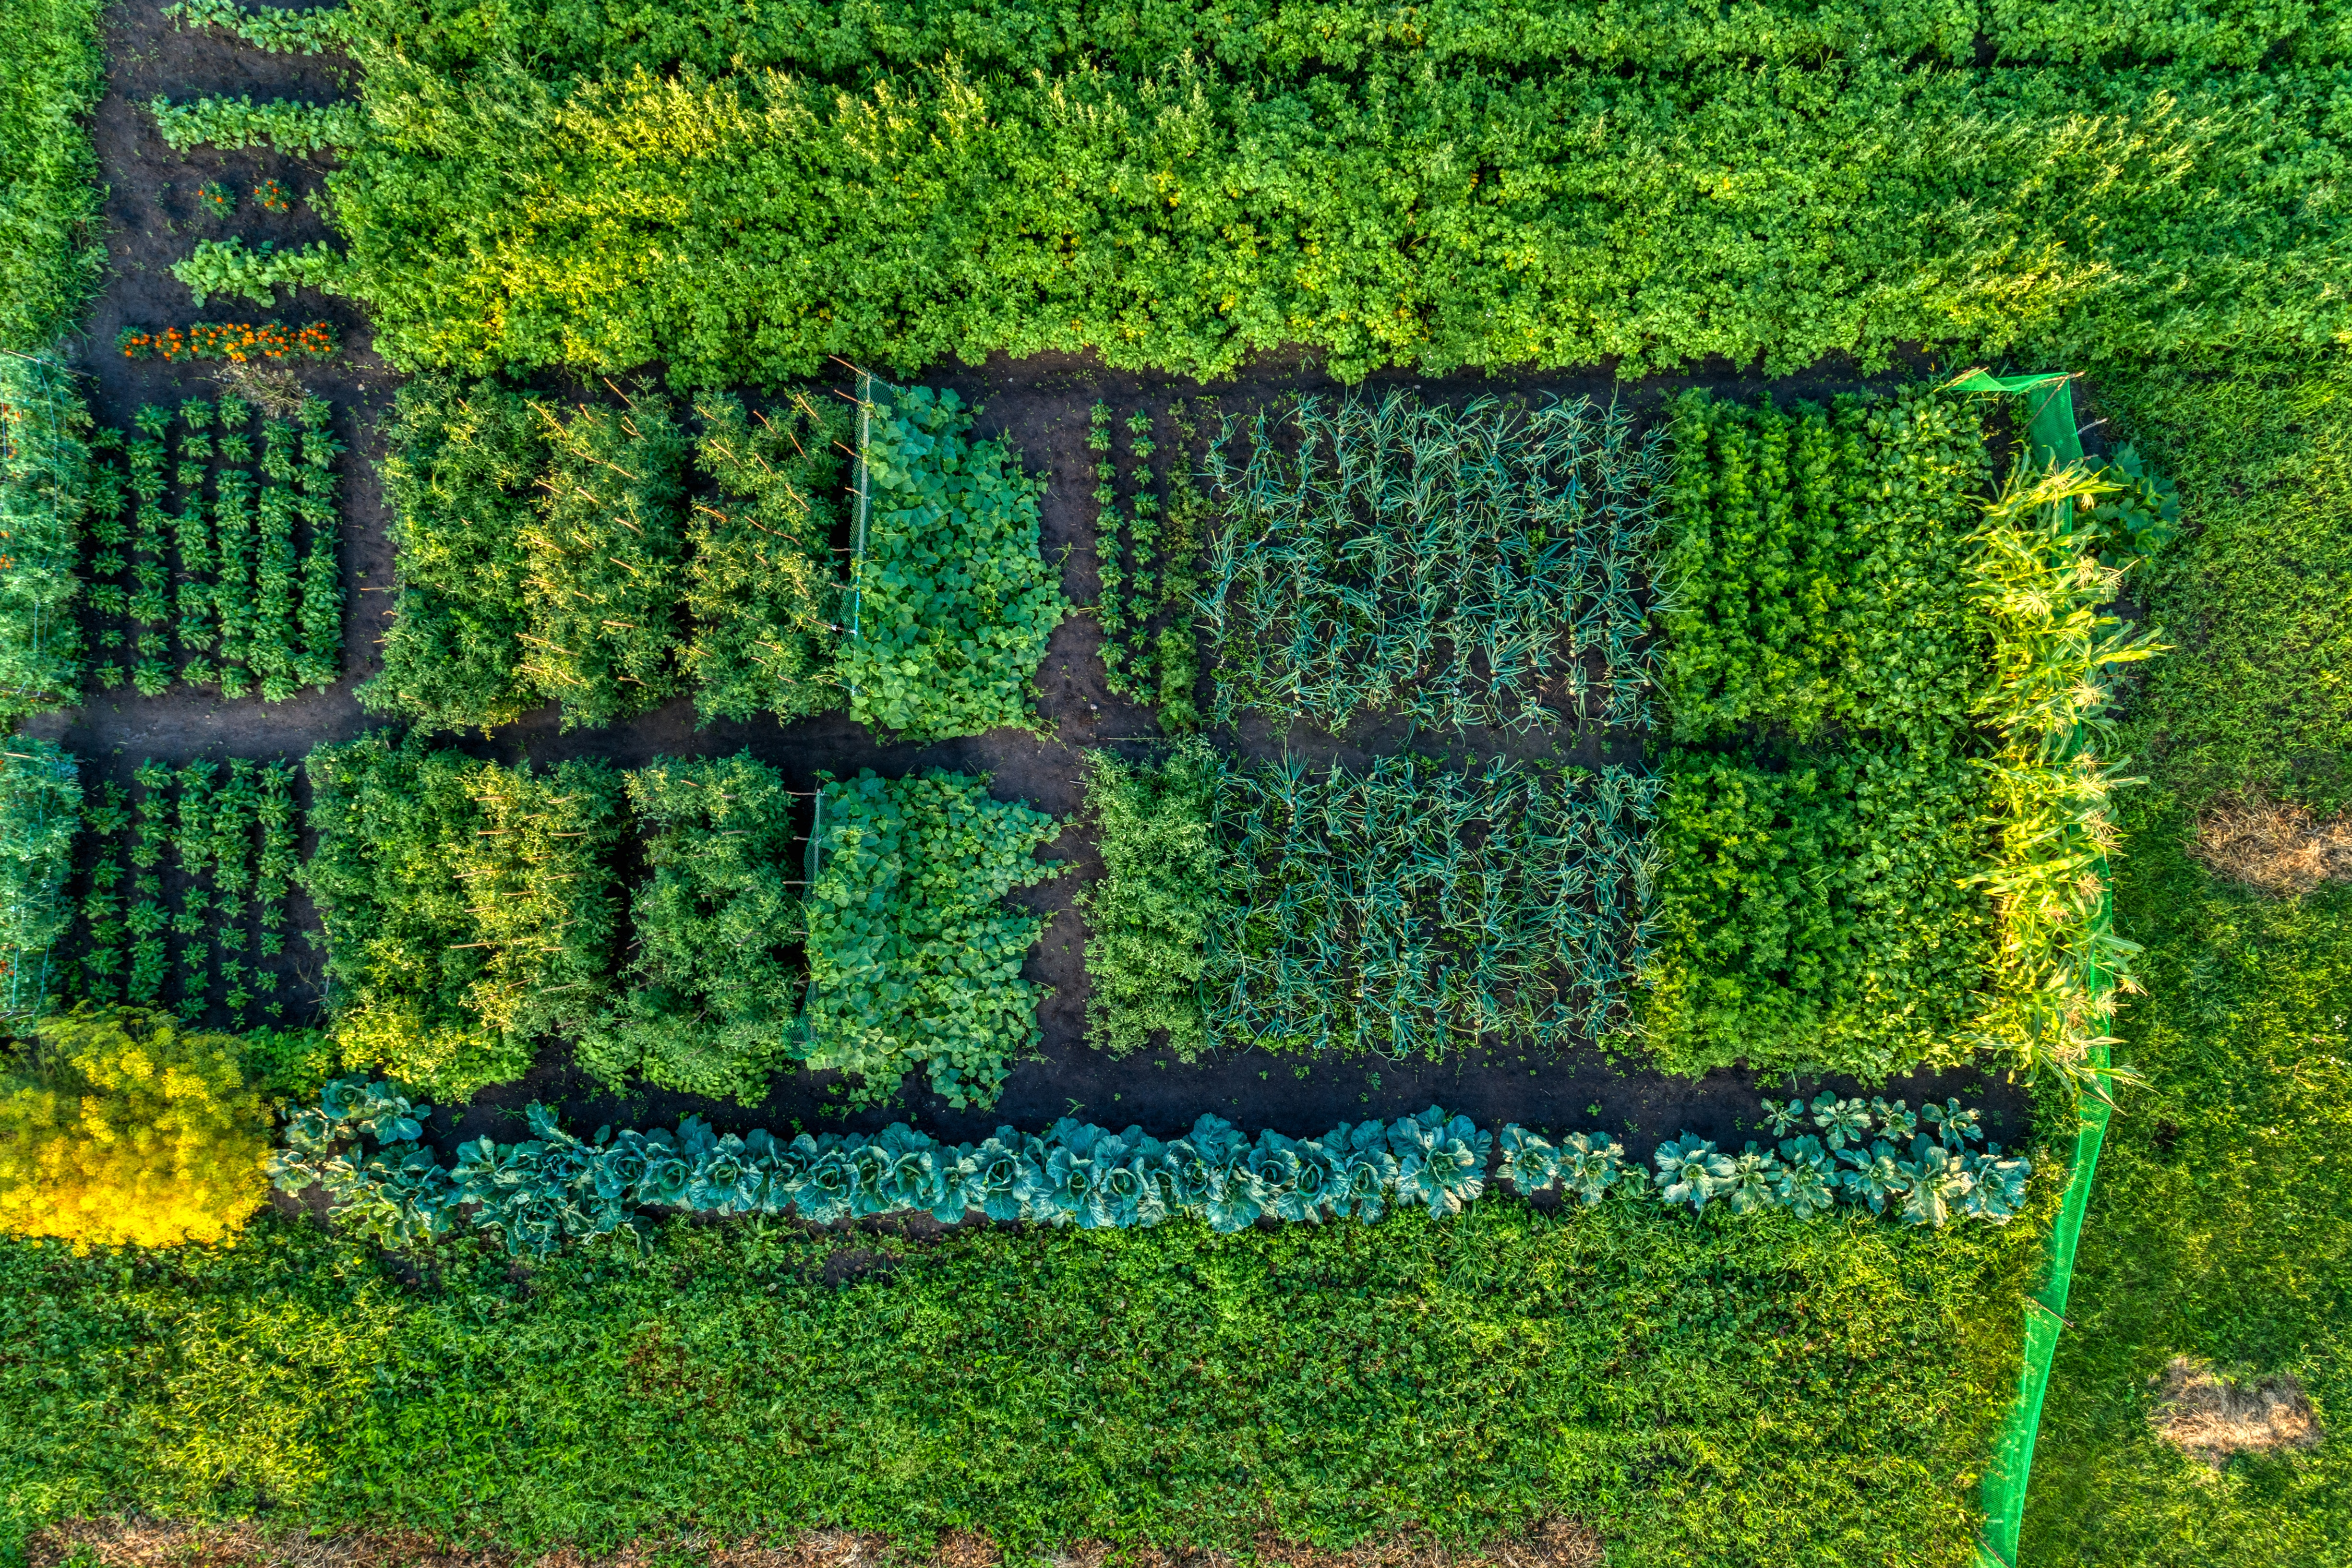 Small farm field, growing vegetables. Aerial view